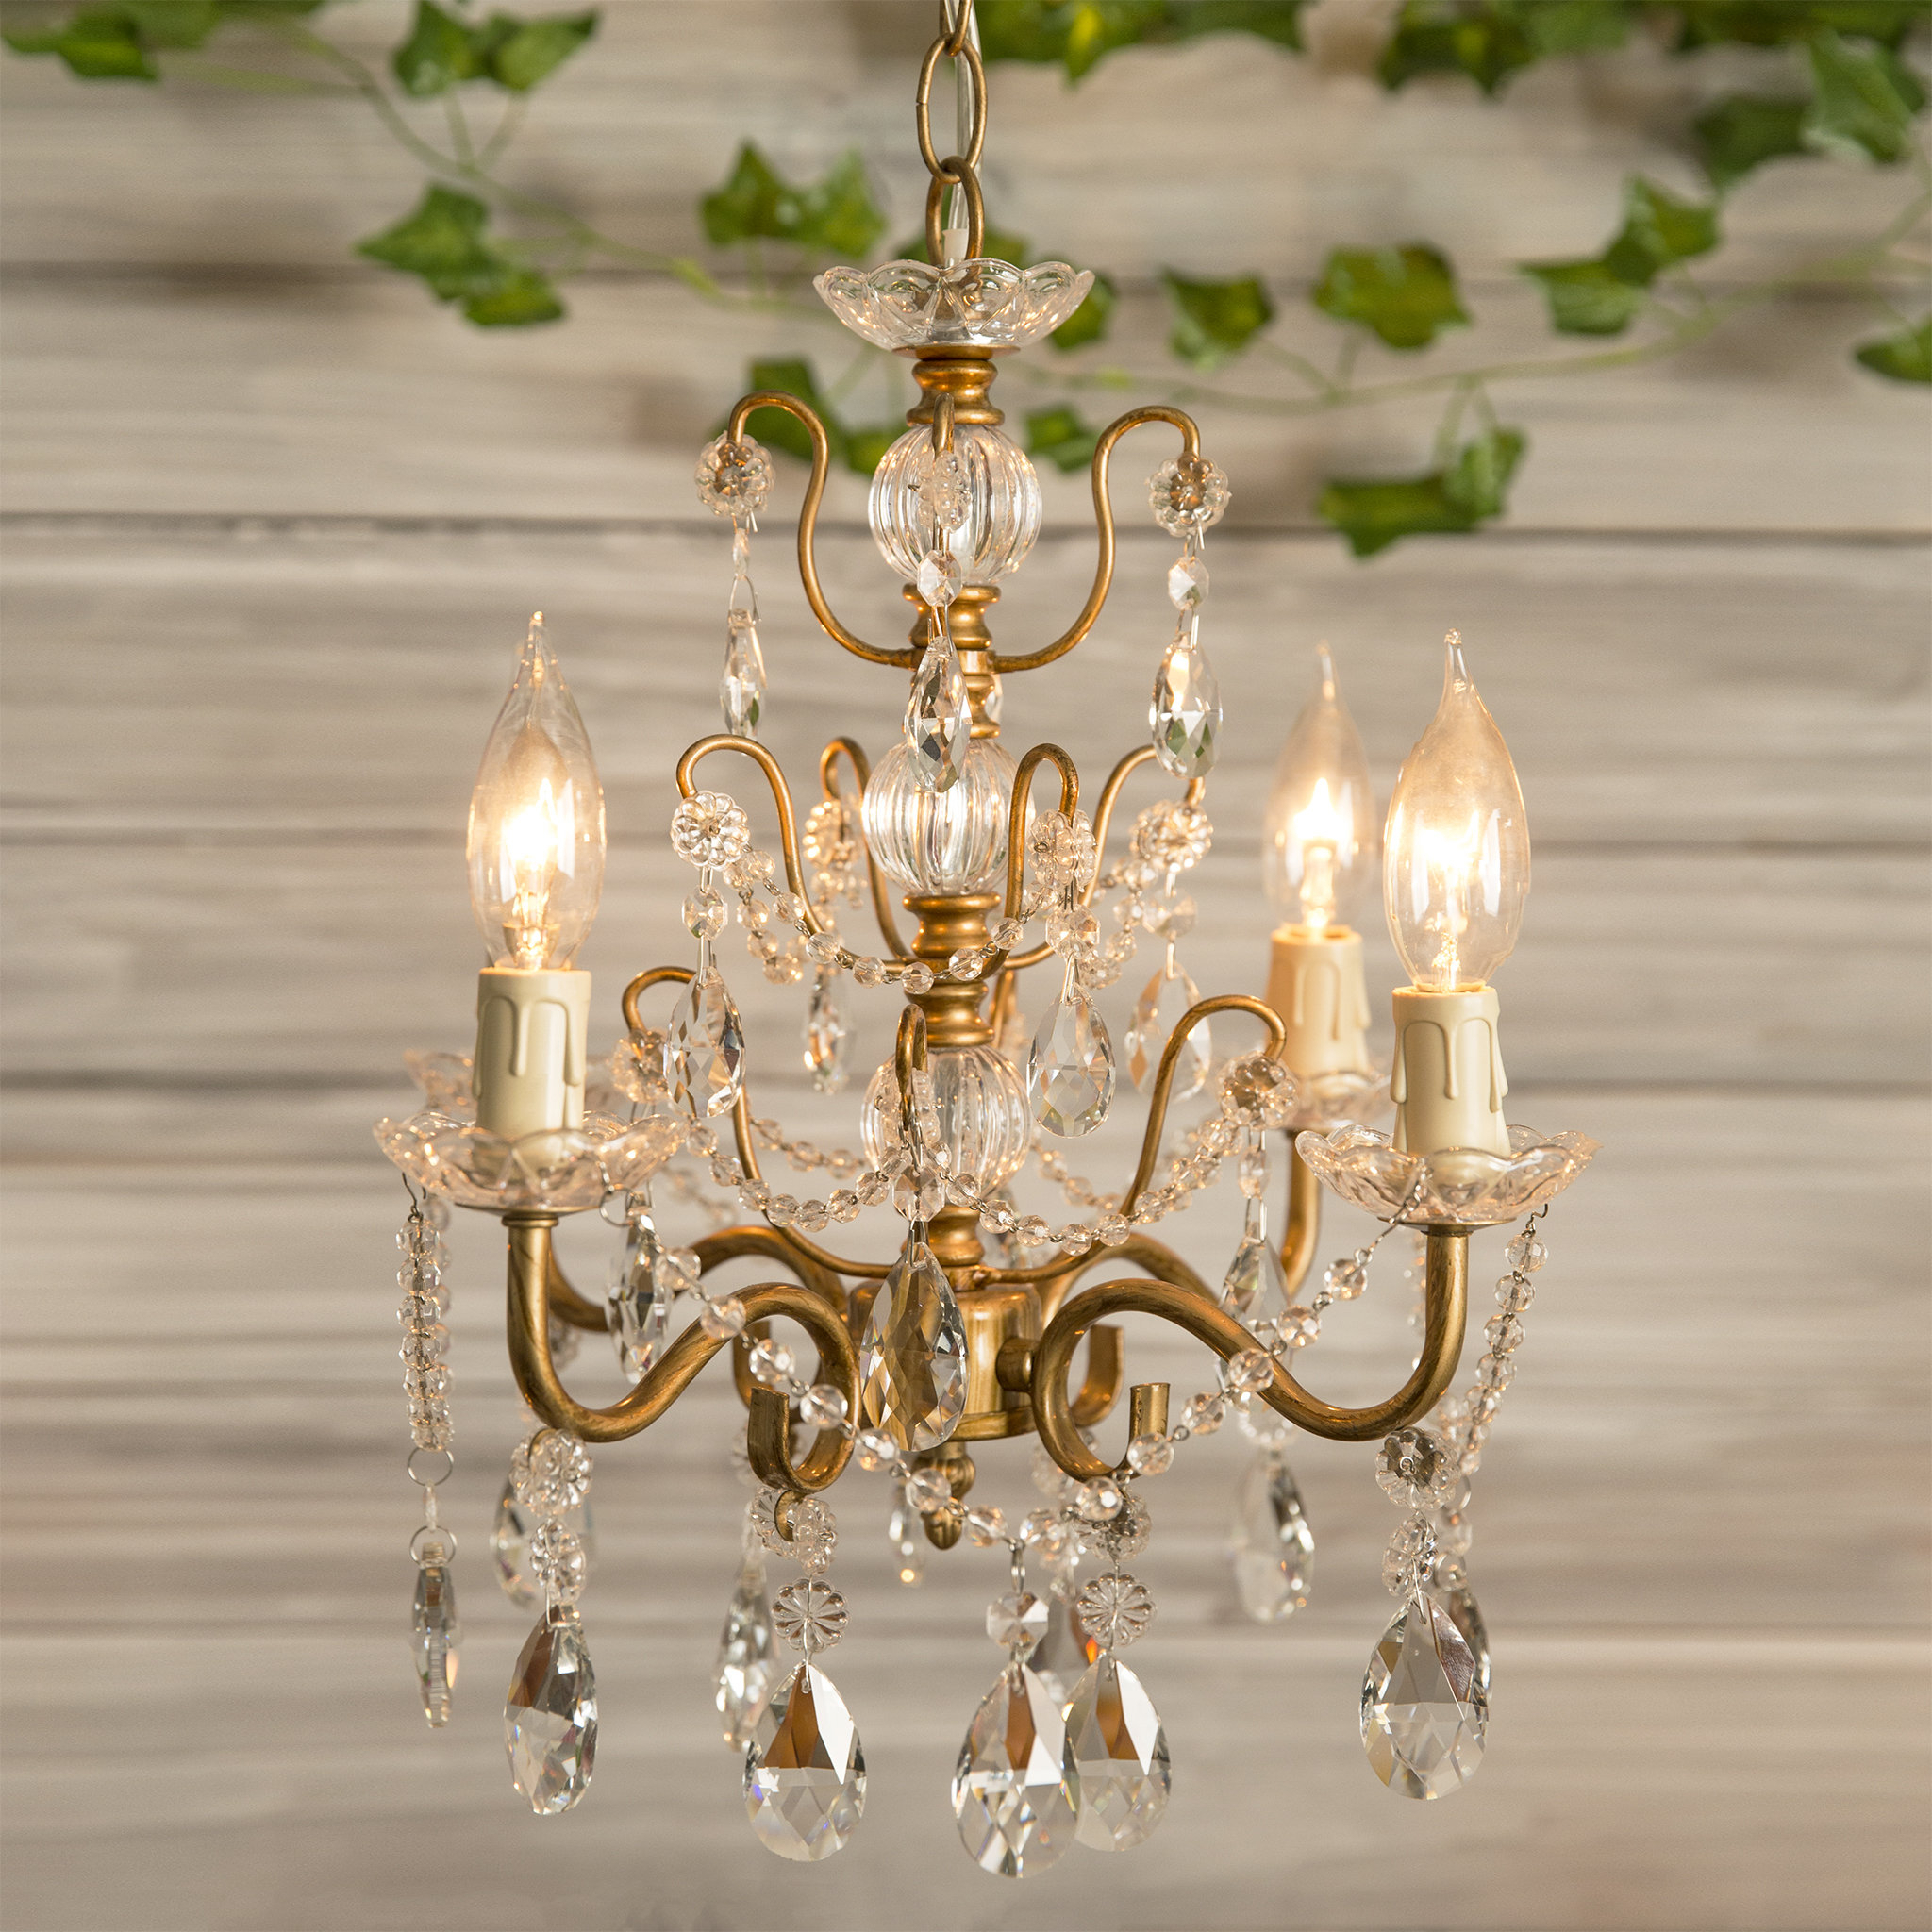 Oriana 4 Light Single Geometric Chandeliers For Fashionable Blanchette 4 Light Candle Style Chandelier (View 12 of 20)